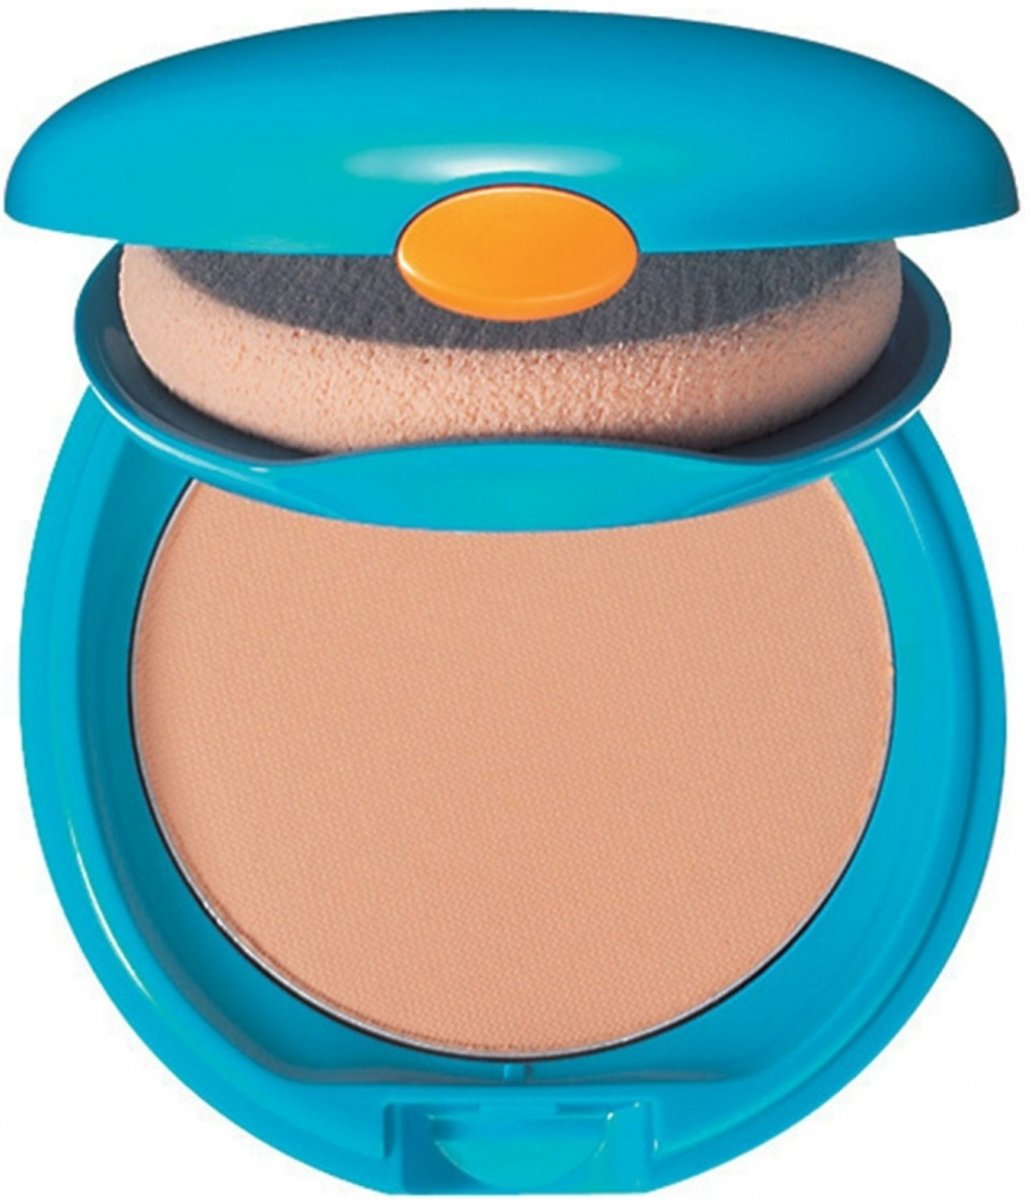 Shiseido UV Protective Compact Foundation 12 gr - Medium Ivory